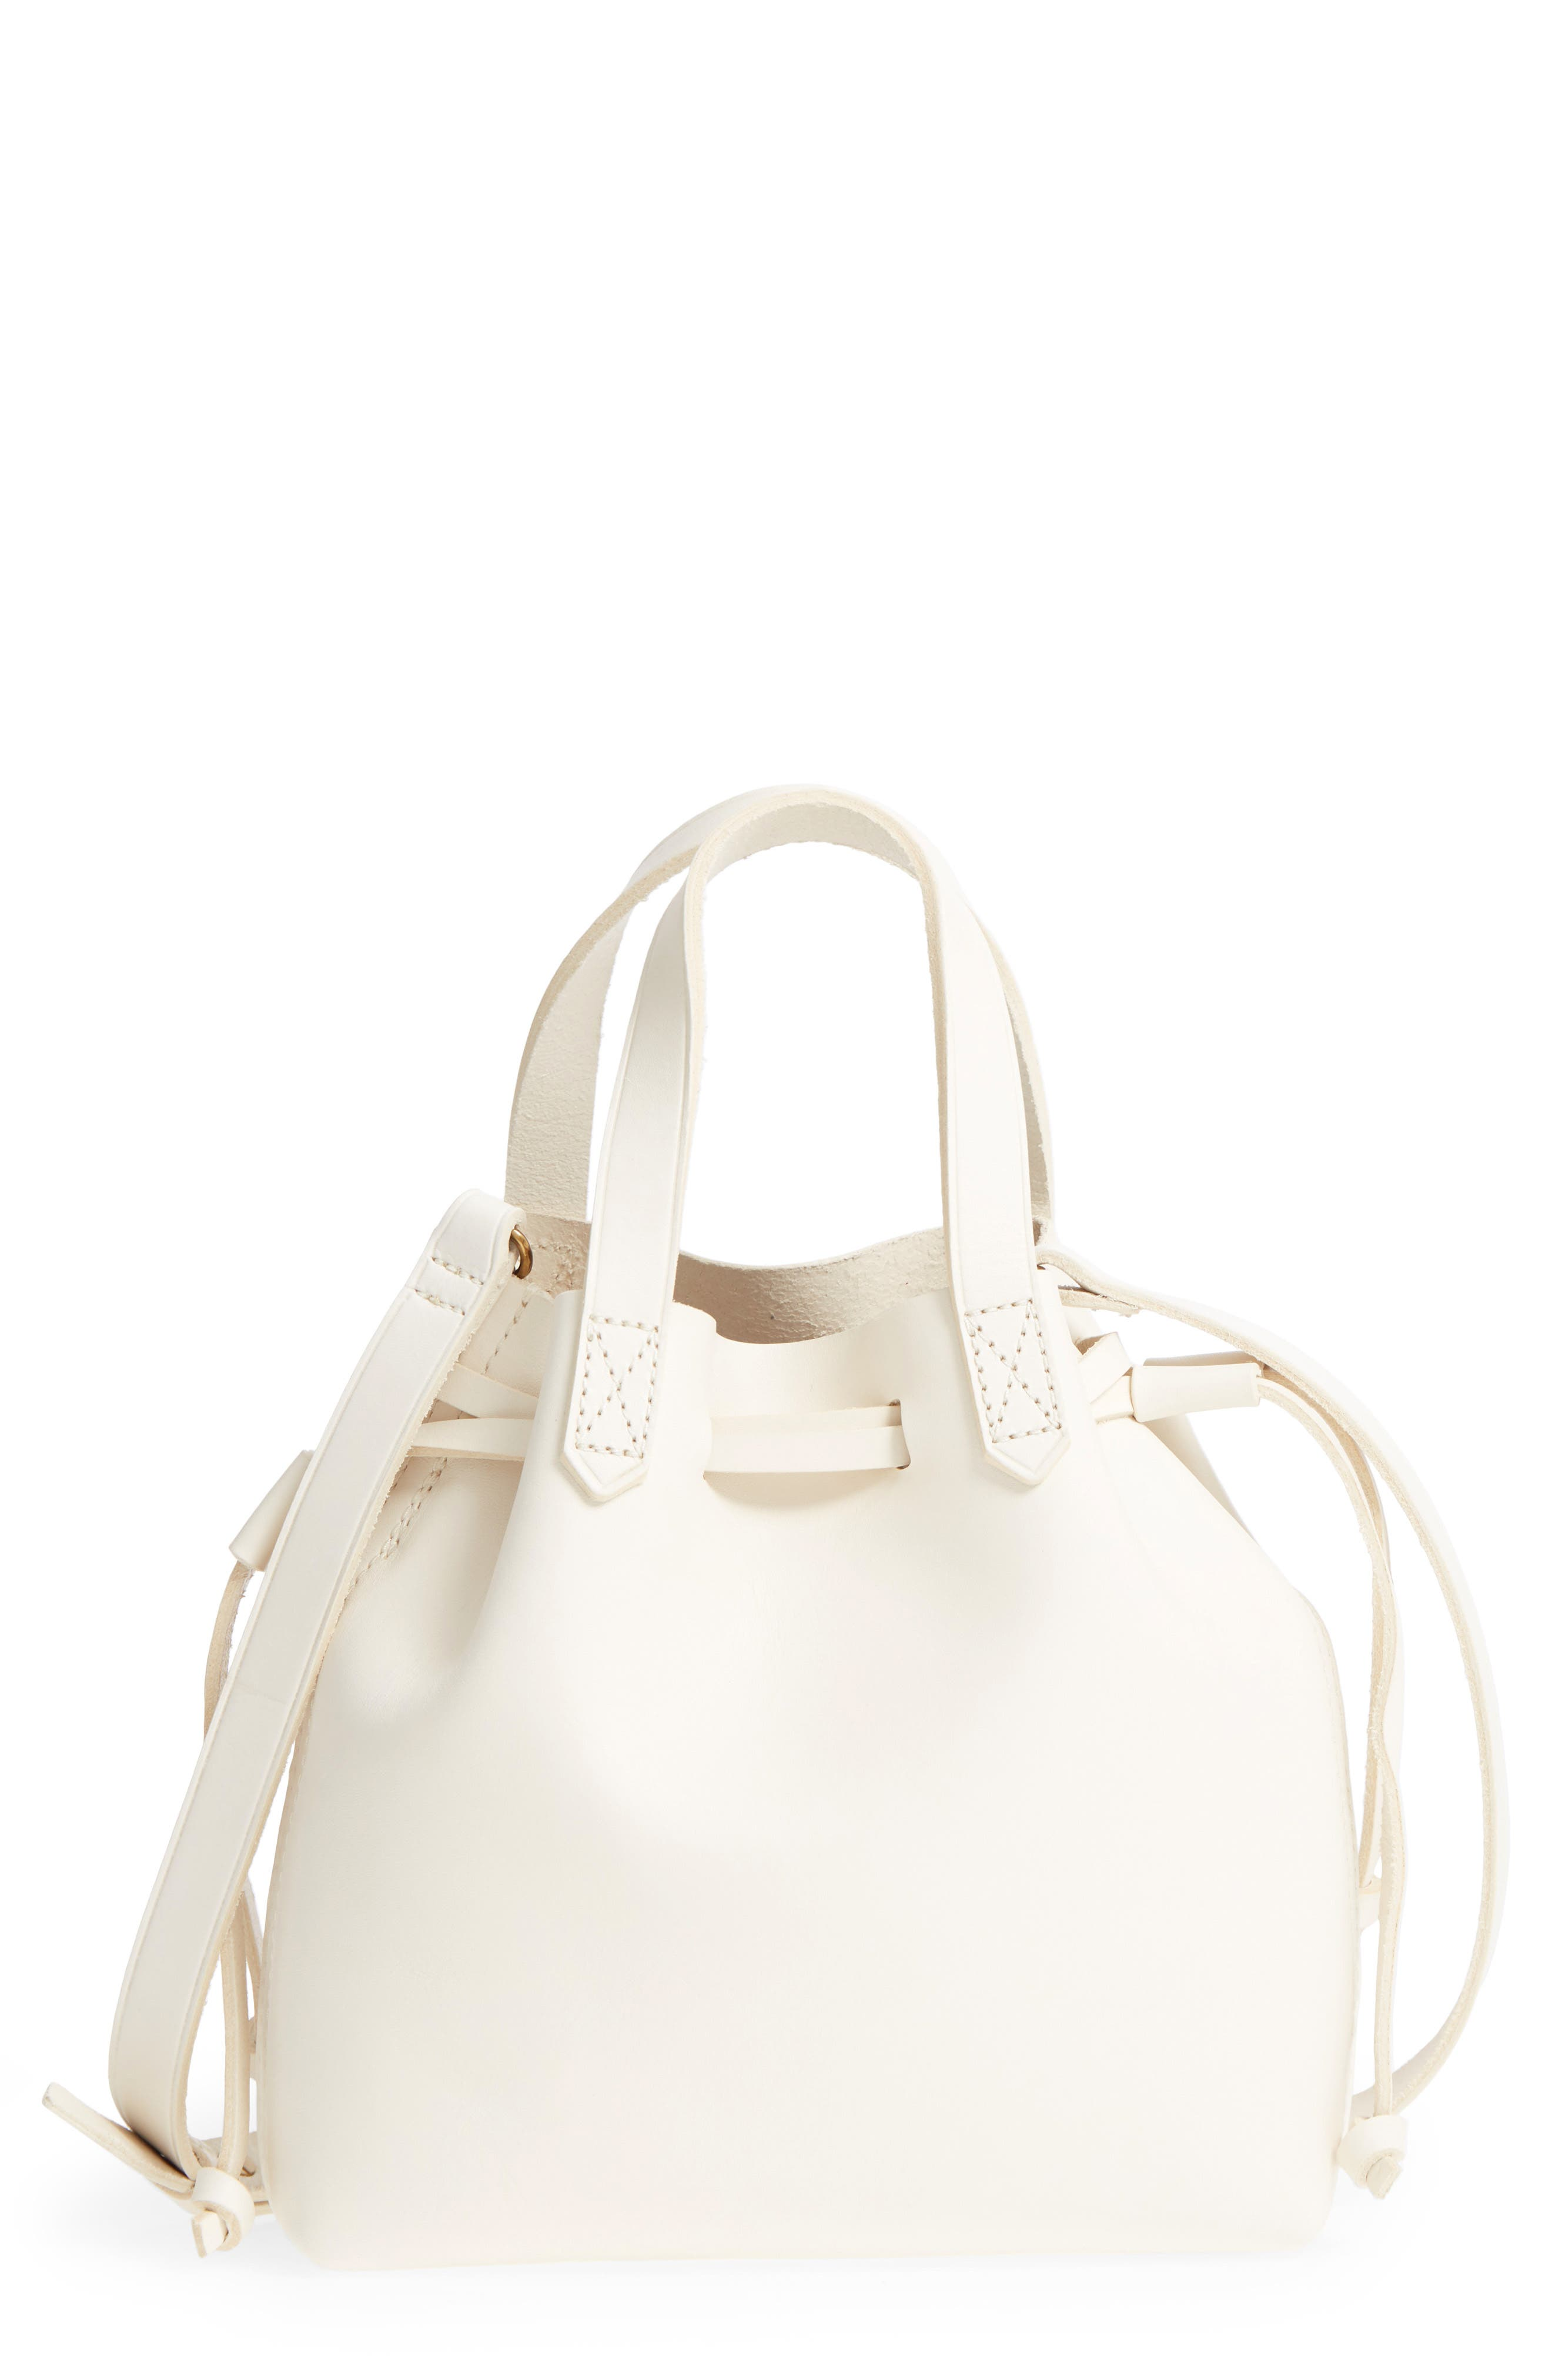 Madewell Mini Drawstring Transport Leather Tote